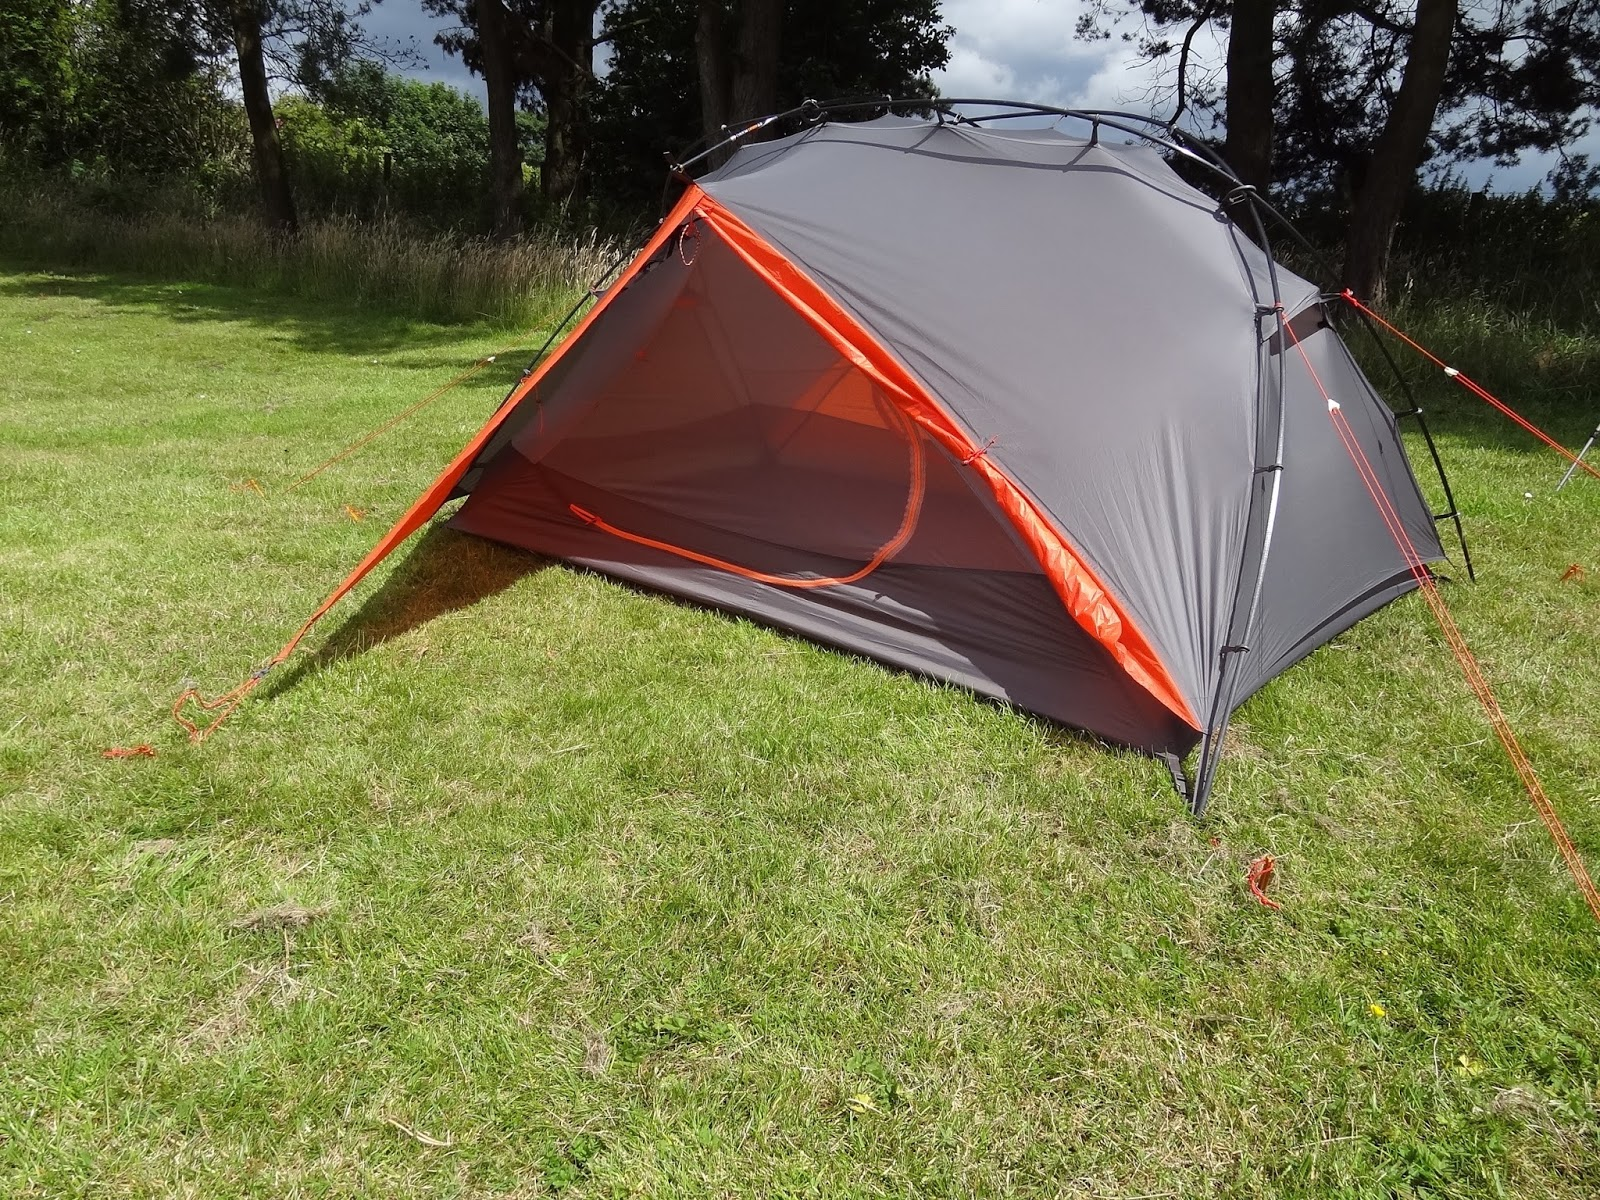 Image to show fabric tension guying points and vents. & A Blog on the Landscape!: KUIU MOUNTAIN STAR 2P TENT. (First look)